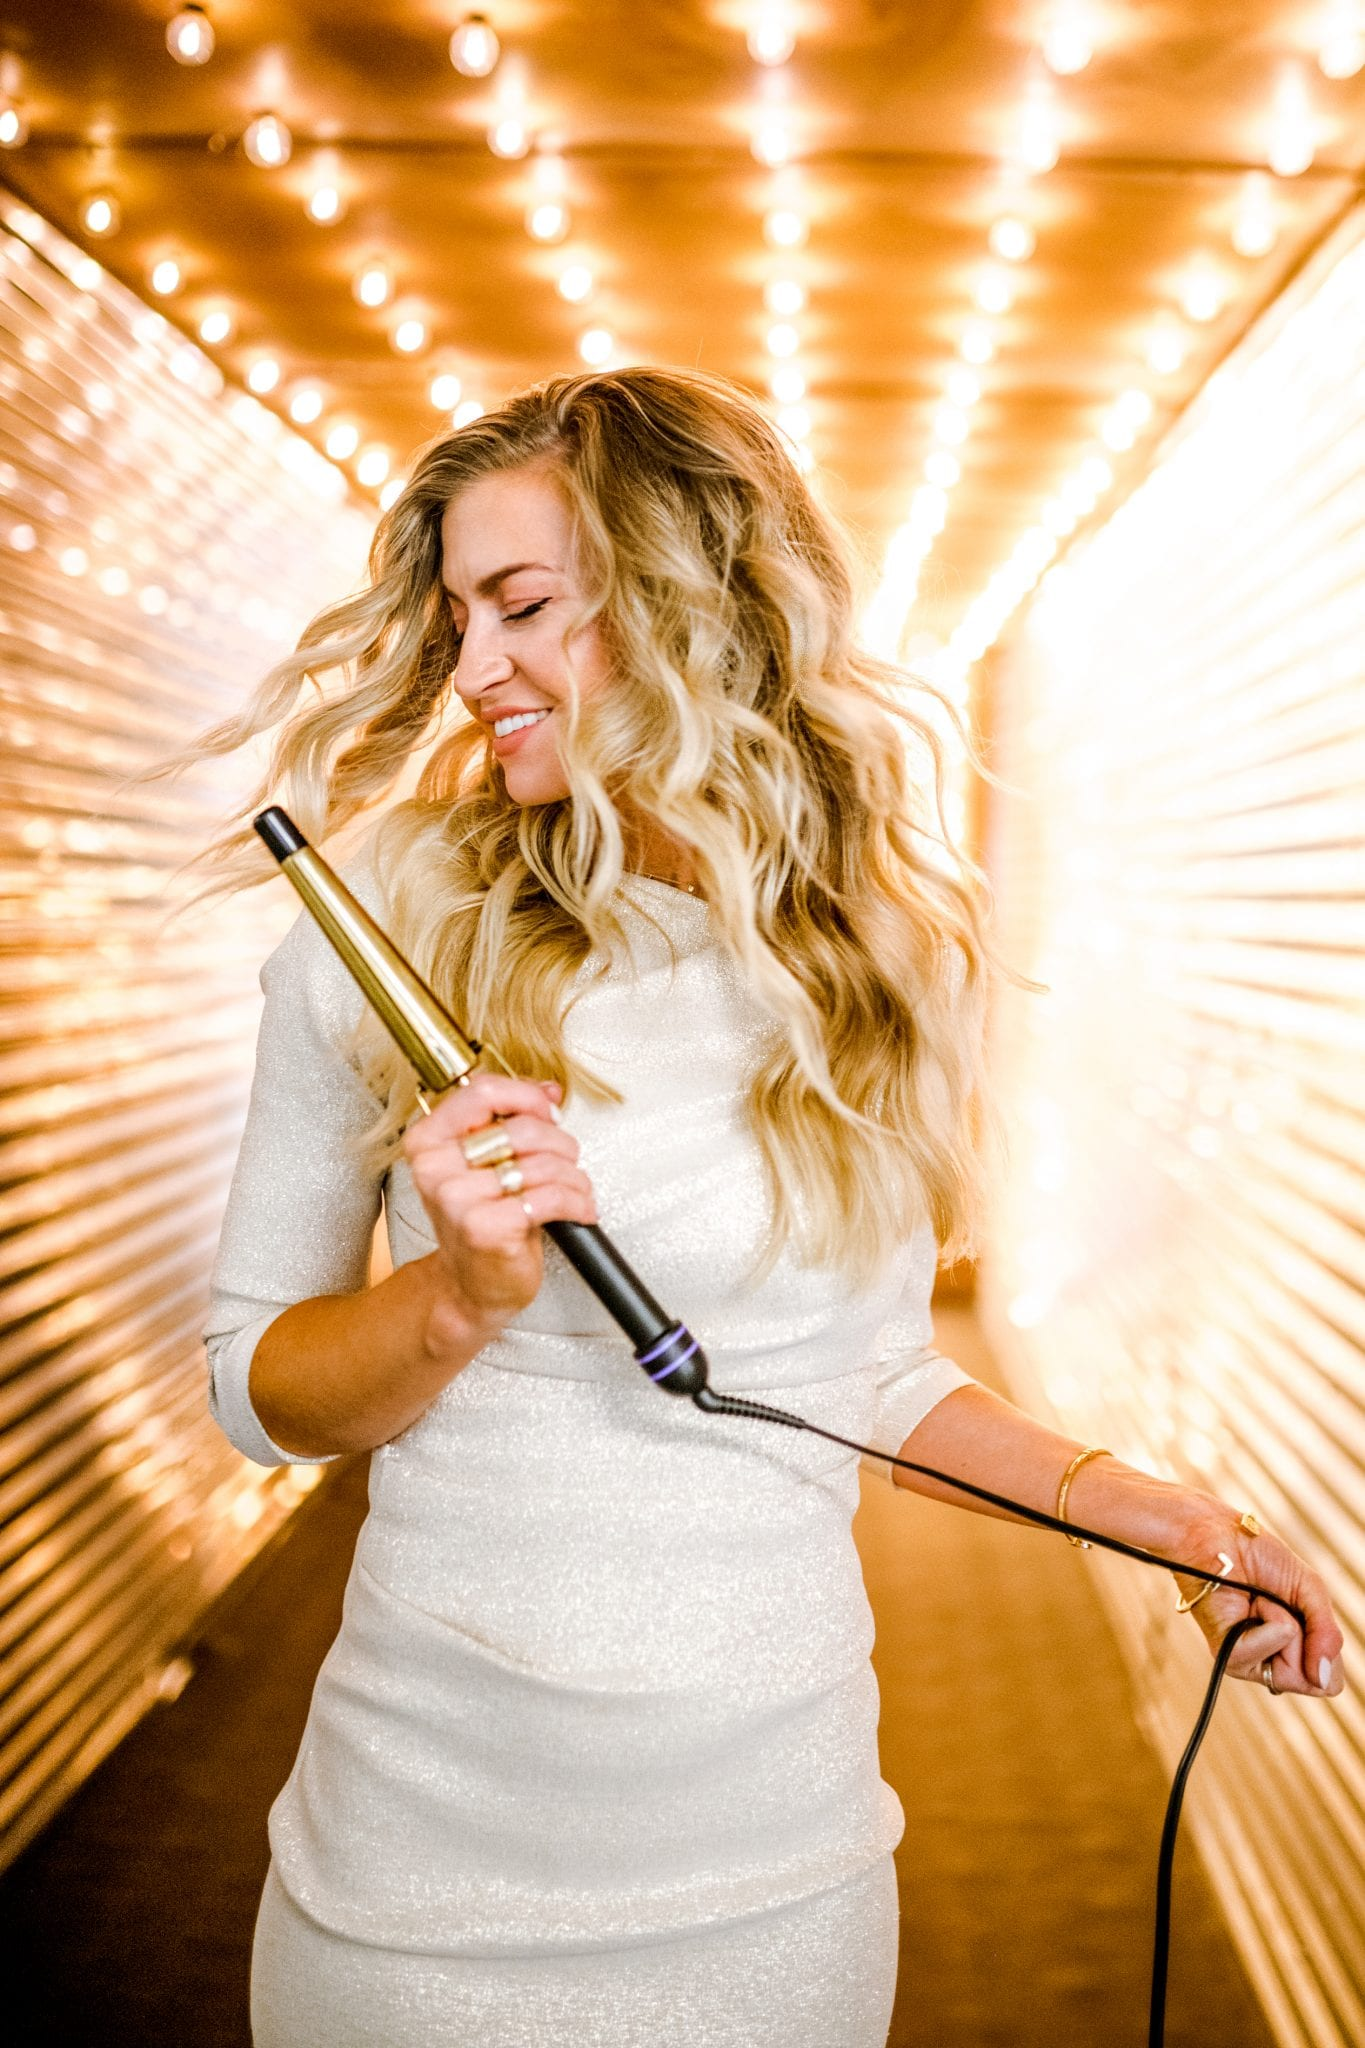 MY HOT TOOLS CURLING WAND + A DISCOUNT CODE